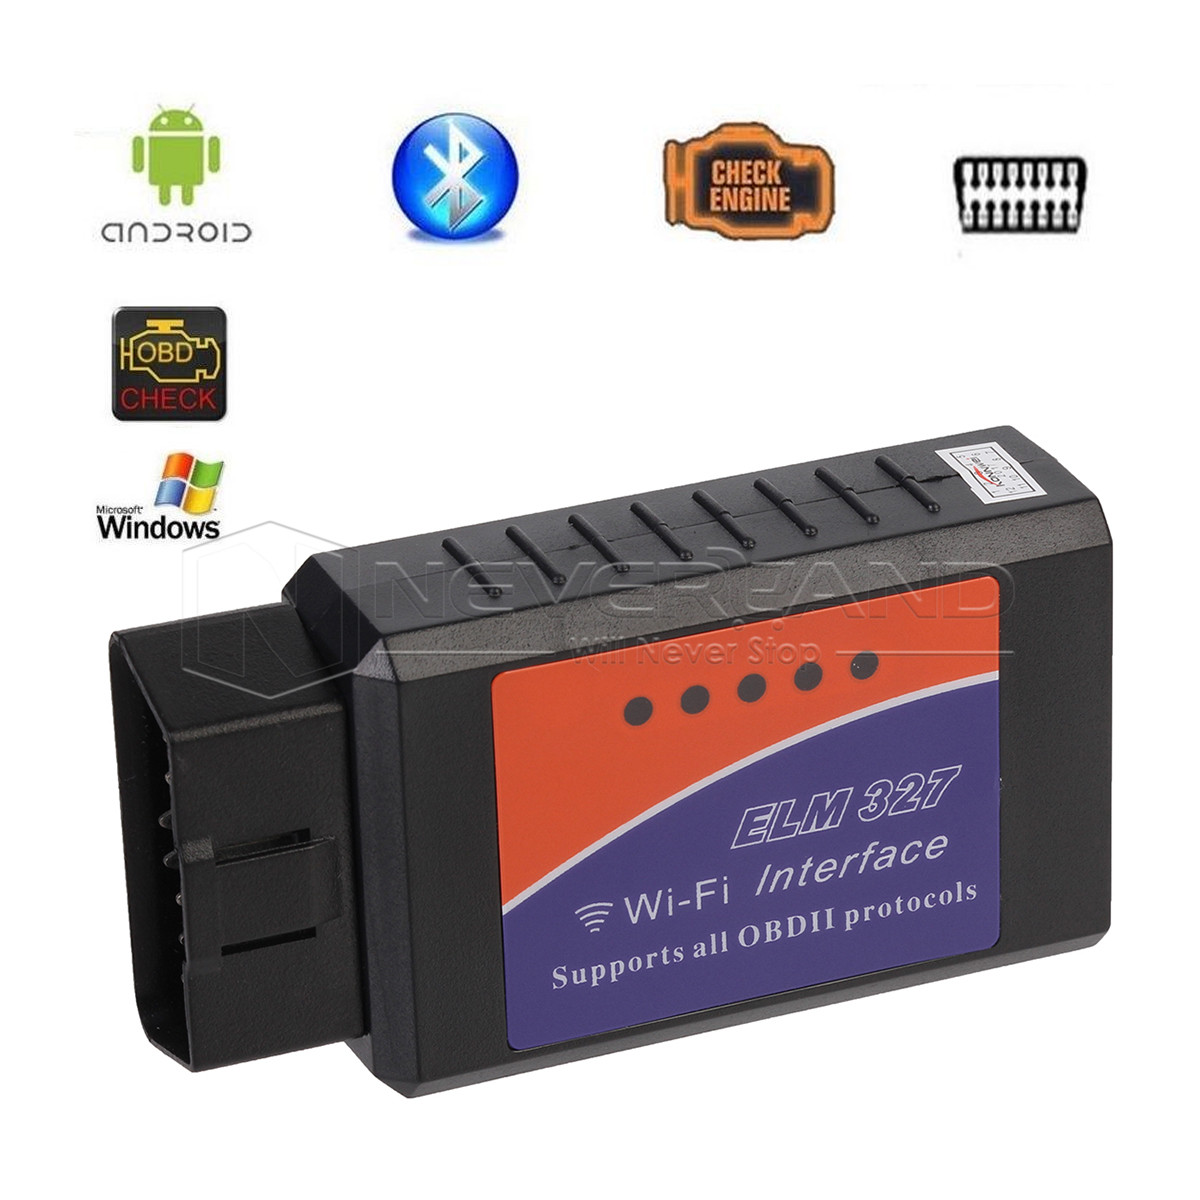 elm327 wifi interface obdii obd2 car scanner code readers diagnostic for android ebay. Black Bedroom Furniture Sets. Home Design Ideas